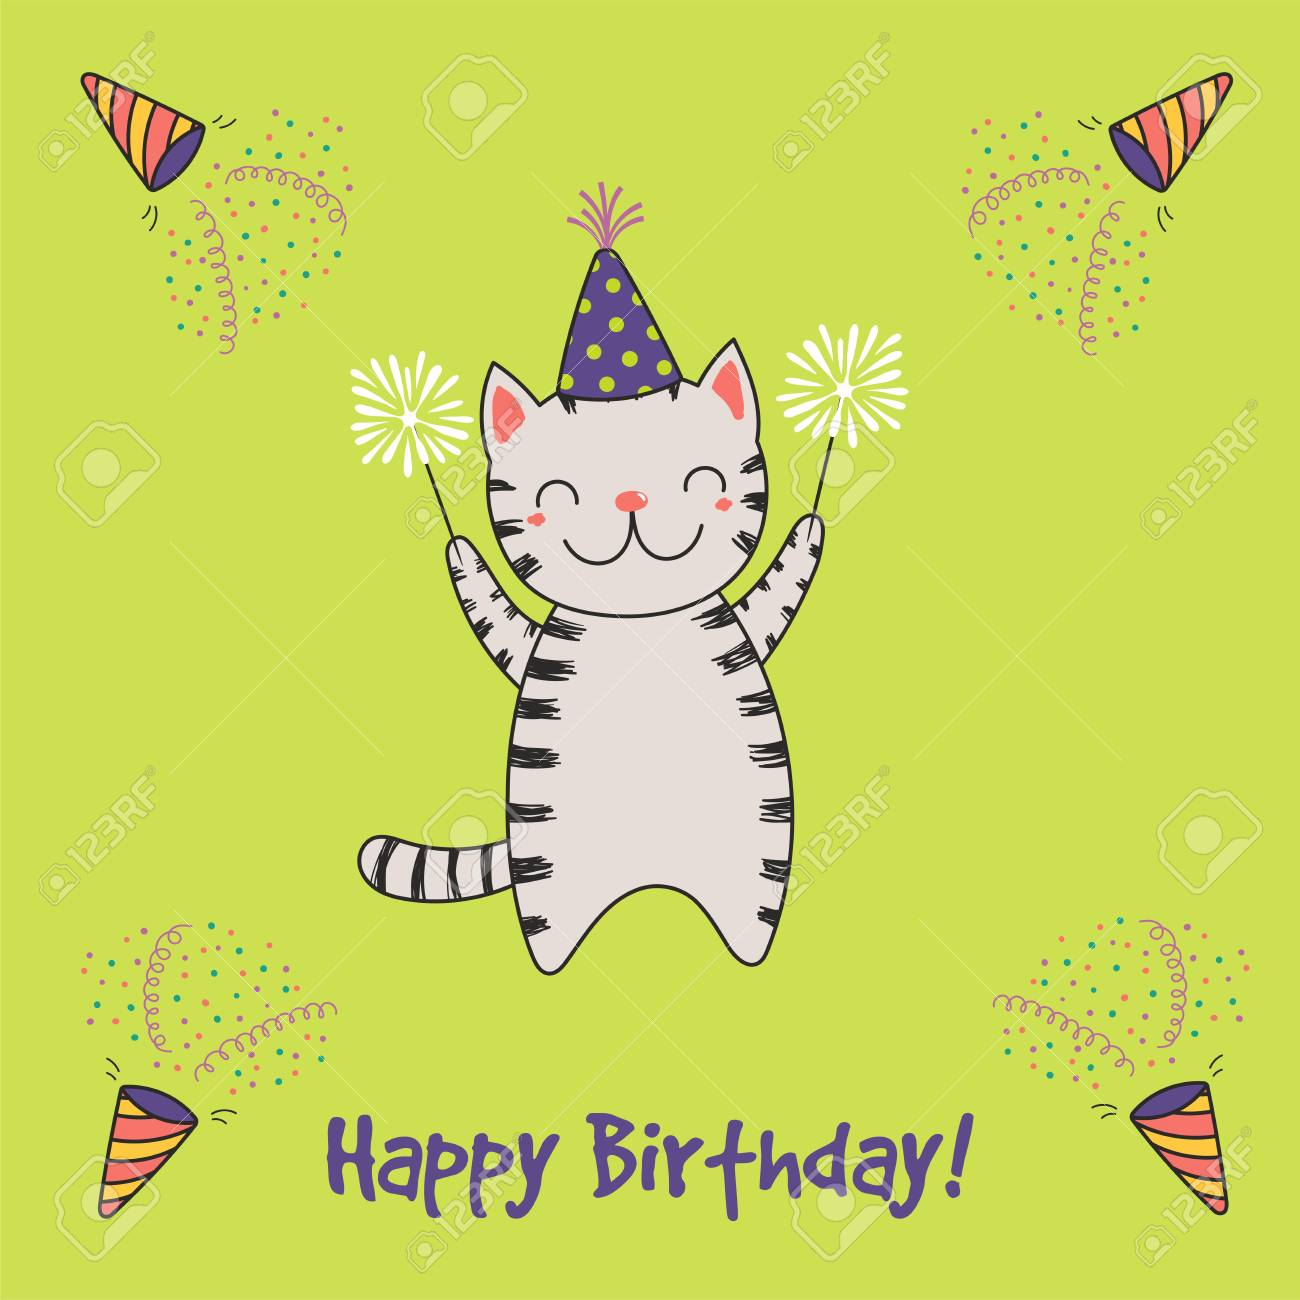 Hand Drawn Happy Birthday Greeting Card With Cute Funny Cartoon Royalty Free Cliparts Vectors And Stock Illustration Image 94825996